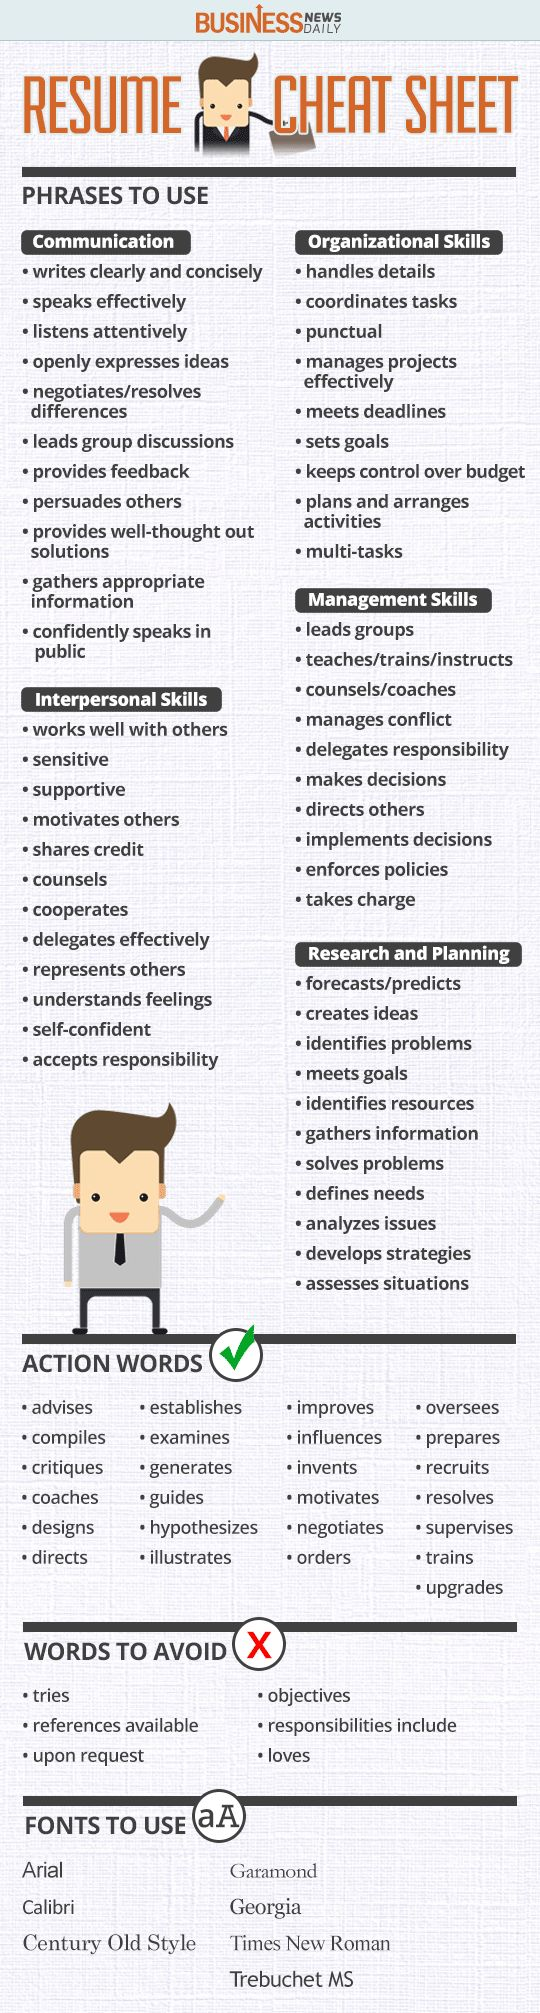 Opposenewapstandardsus  Marvelous  Ideas About Resume On Pinterest  Cv Format Resume Cv And  With Hot Resume Cheat Sheet Infographic Andrews Almost Done With A Complete Unit On Employment Which With Agreeable Actor Resume Example Also Profile For Resume Examples In Addition Free Modern Resume Template And Resume Design Tips As Well As Help Desk Resume Sample Additionally Attractive Resume From Pinterestcom With Opposenewapstandardsus  Hot  Ideas About Resume On Pinterest  Cv Format Resume Cv And  With Agreeable Resume Cheat Sheet Infographic Andrews Almost Done With A Complete Unit On Employment Which And Marvelous Actor Resume Example Also Profile For Resume Examples In Addition Free Modern Resume Template From Pinterestcom